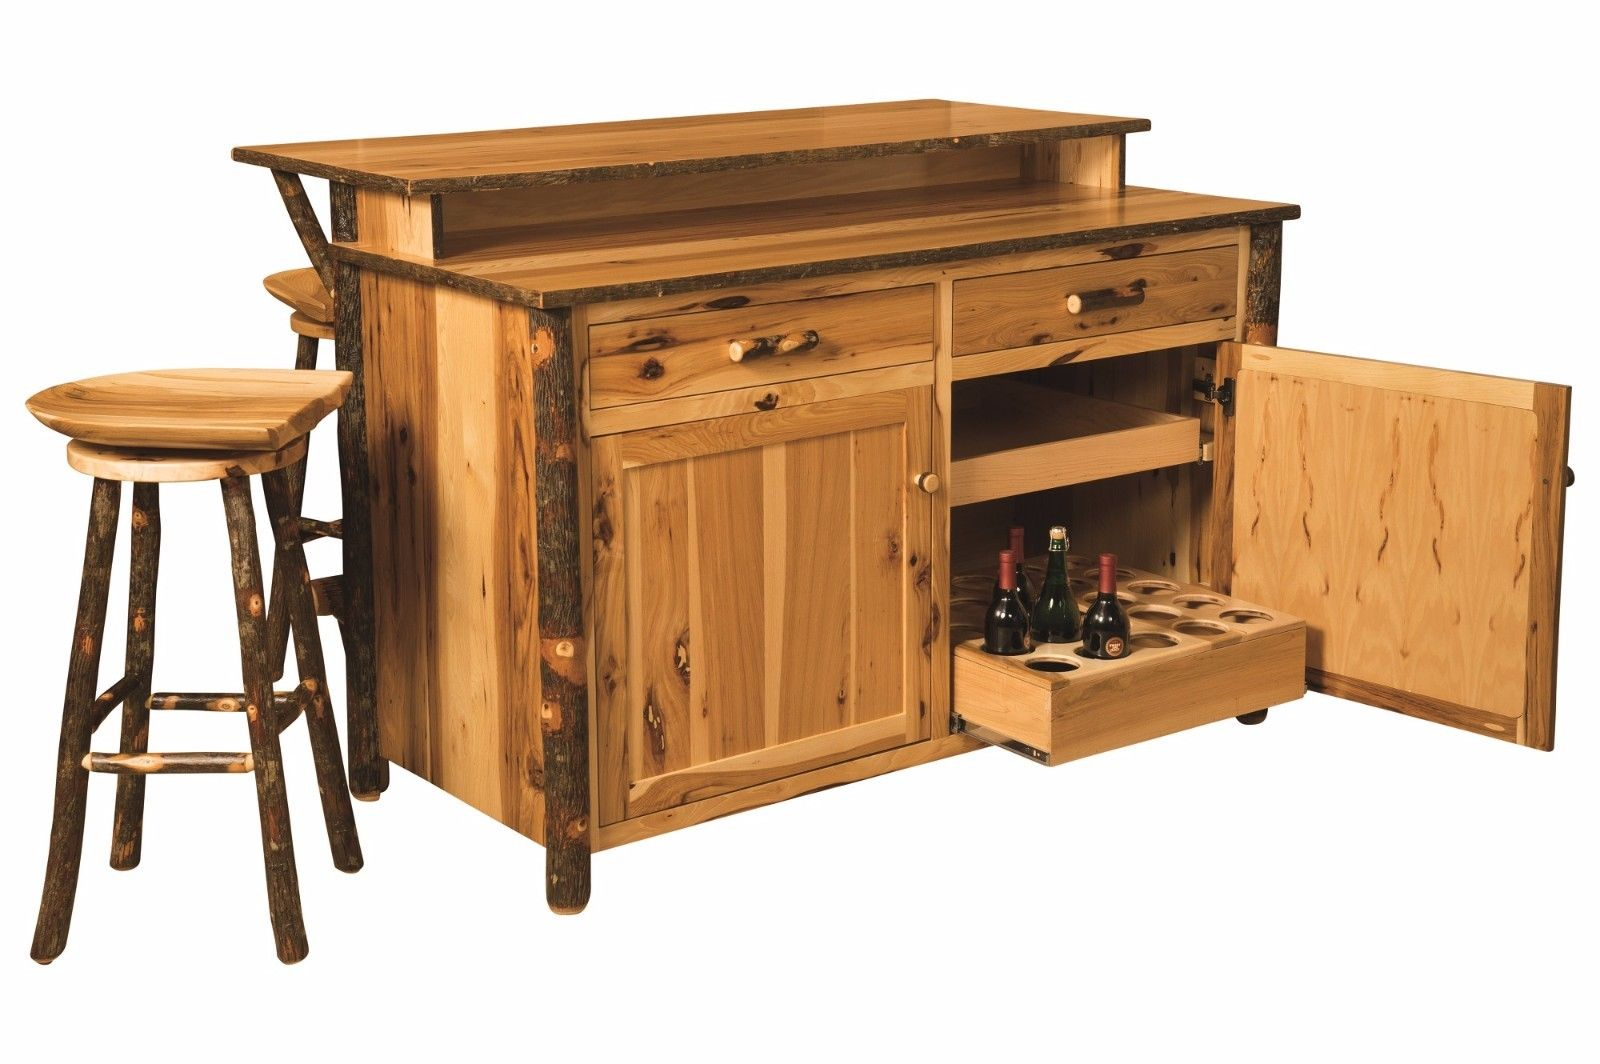 Amish Hickory Home Wine Bar Kitchen Island Set W Stools Surrey Street Rustic